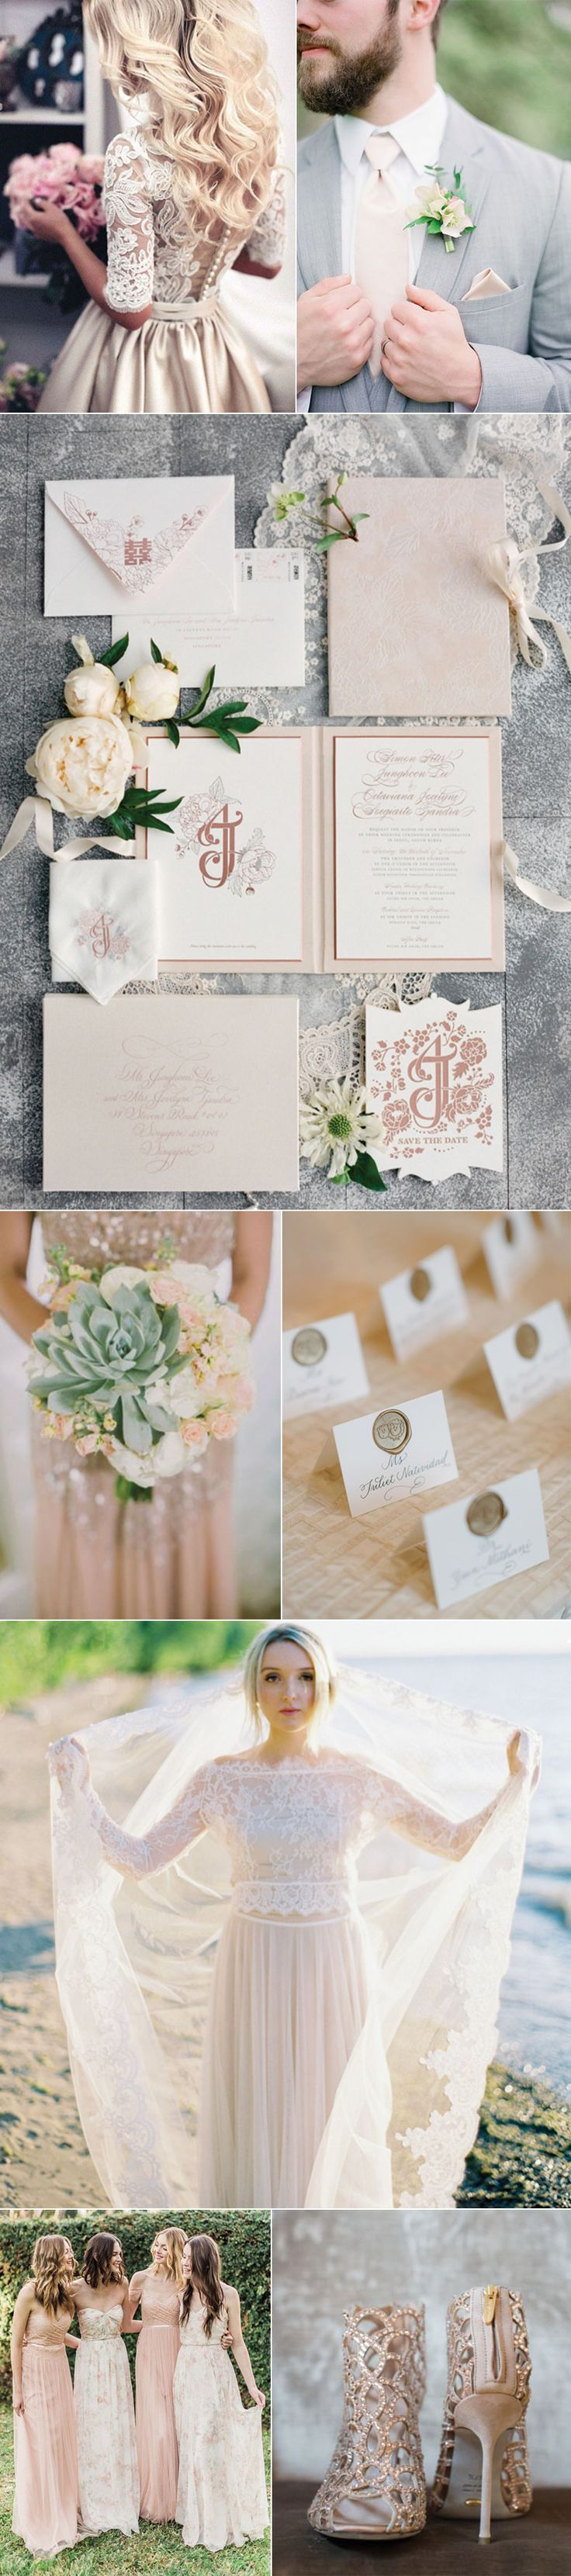 There's no other color combination that can out romance champagne + blush. Here's an inspirational snapshot of the possibilities ranging from patterned floral bridesmaid dresses to glamorous wedding shoes to metallic champagne wedding gowns